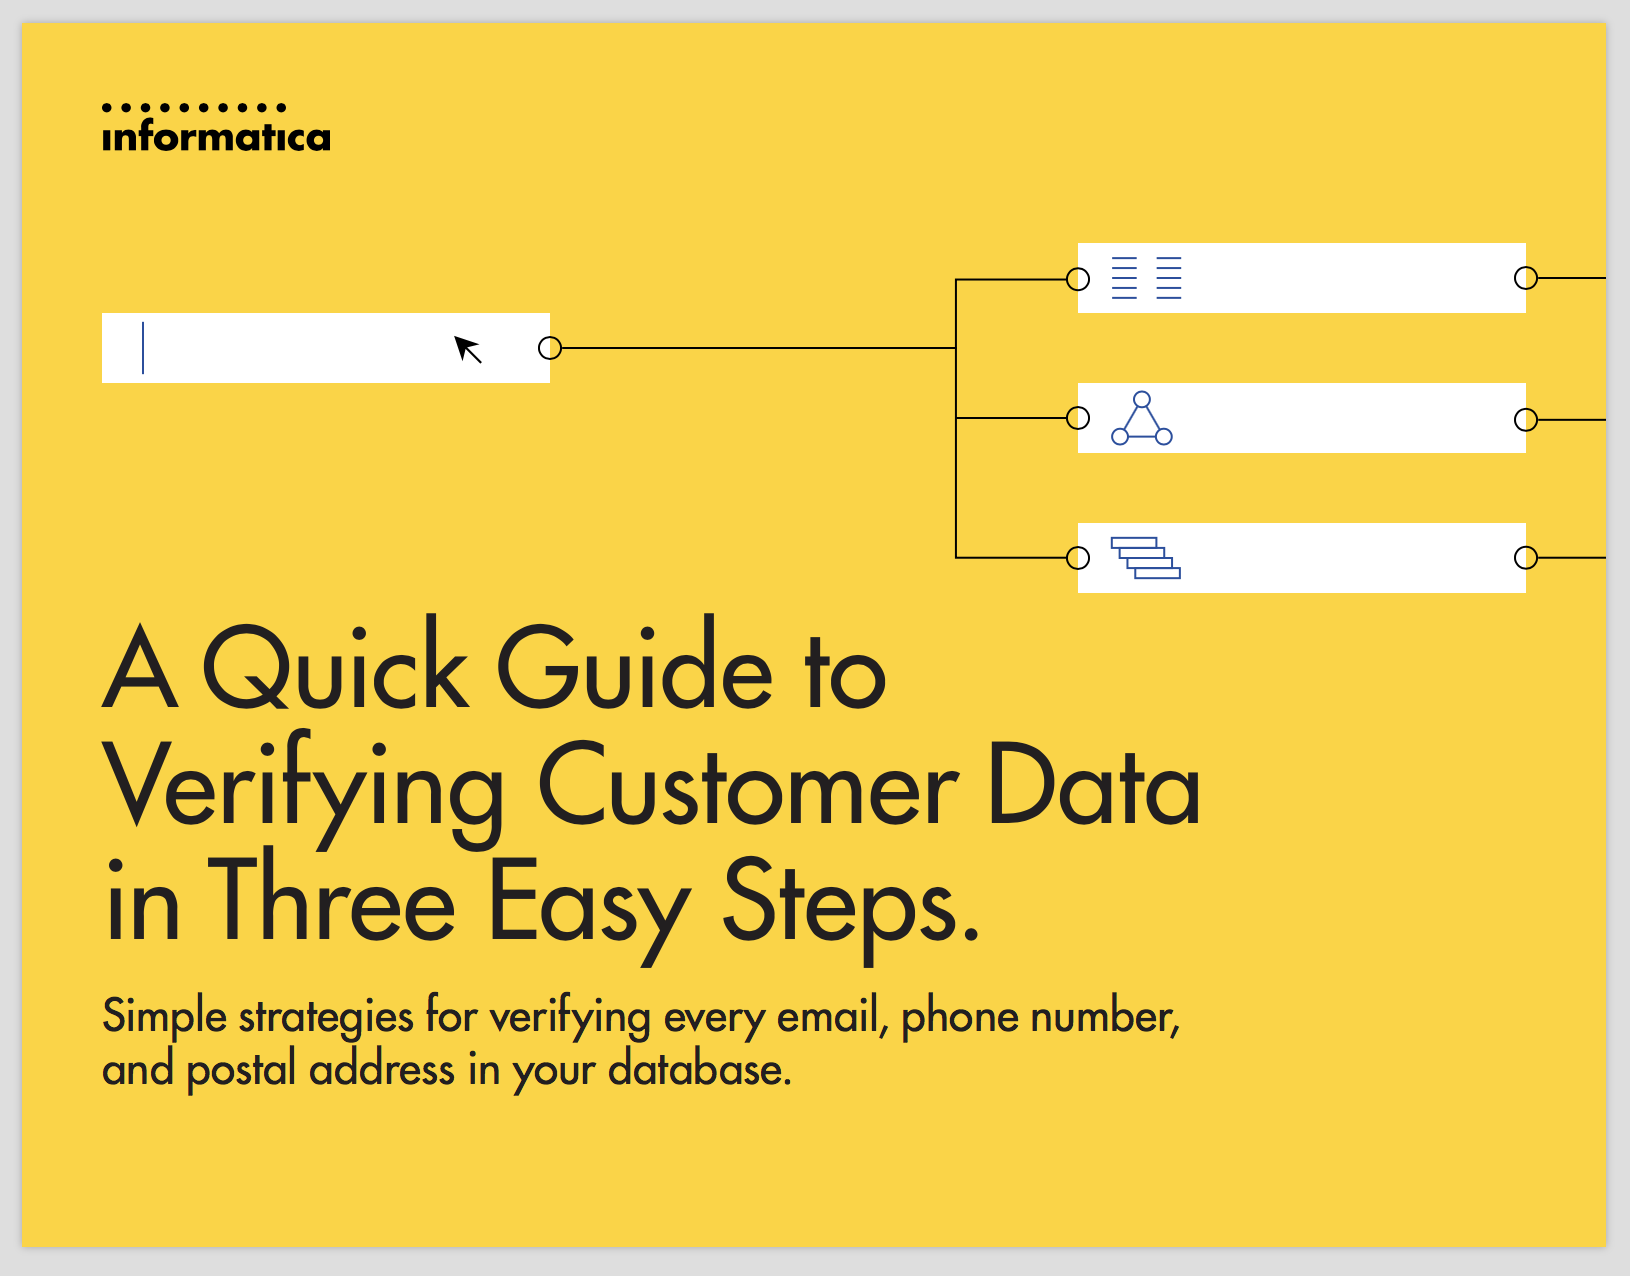 A Quick Guide to Verifying Customer Data in 3 Steps